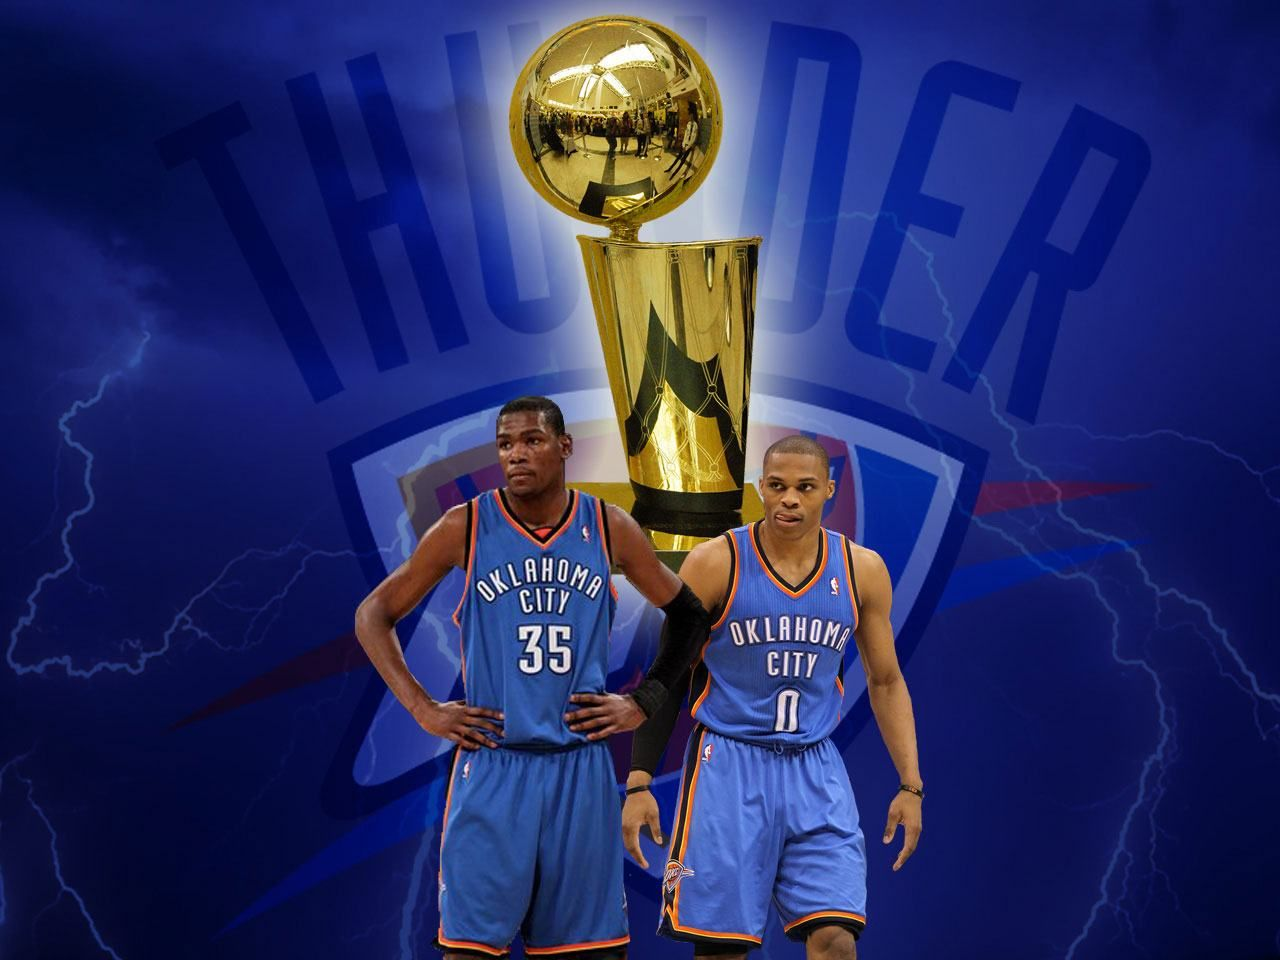 Russell westbrook wallpaper iphone wallpapersafari - Kevin Durant Wallpapers This Wallpaper